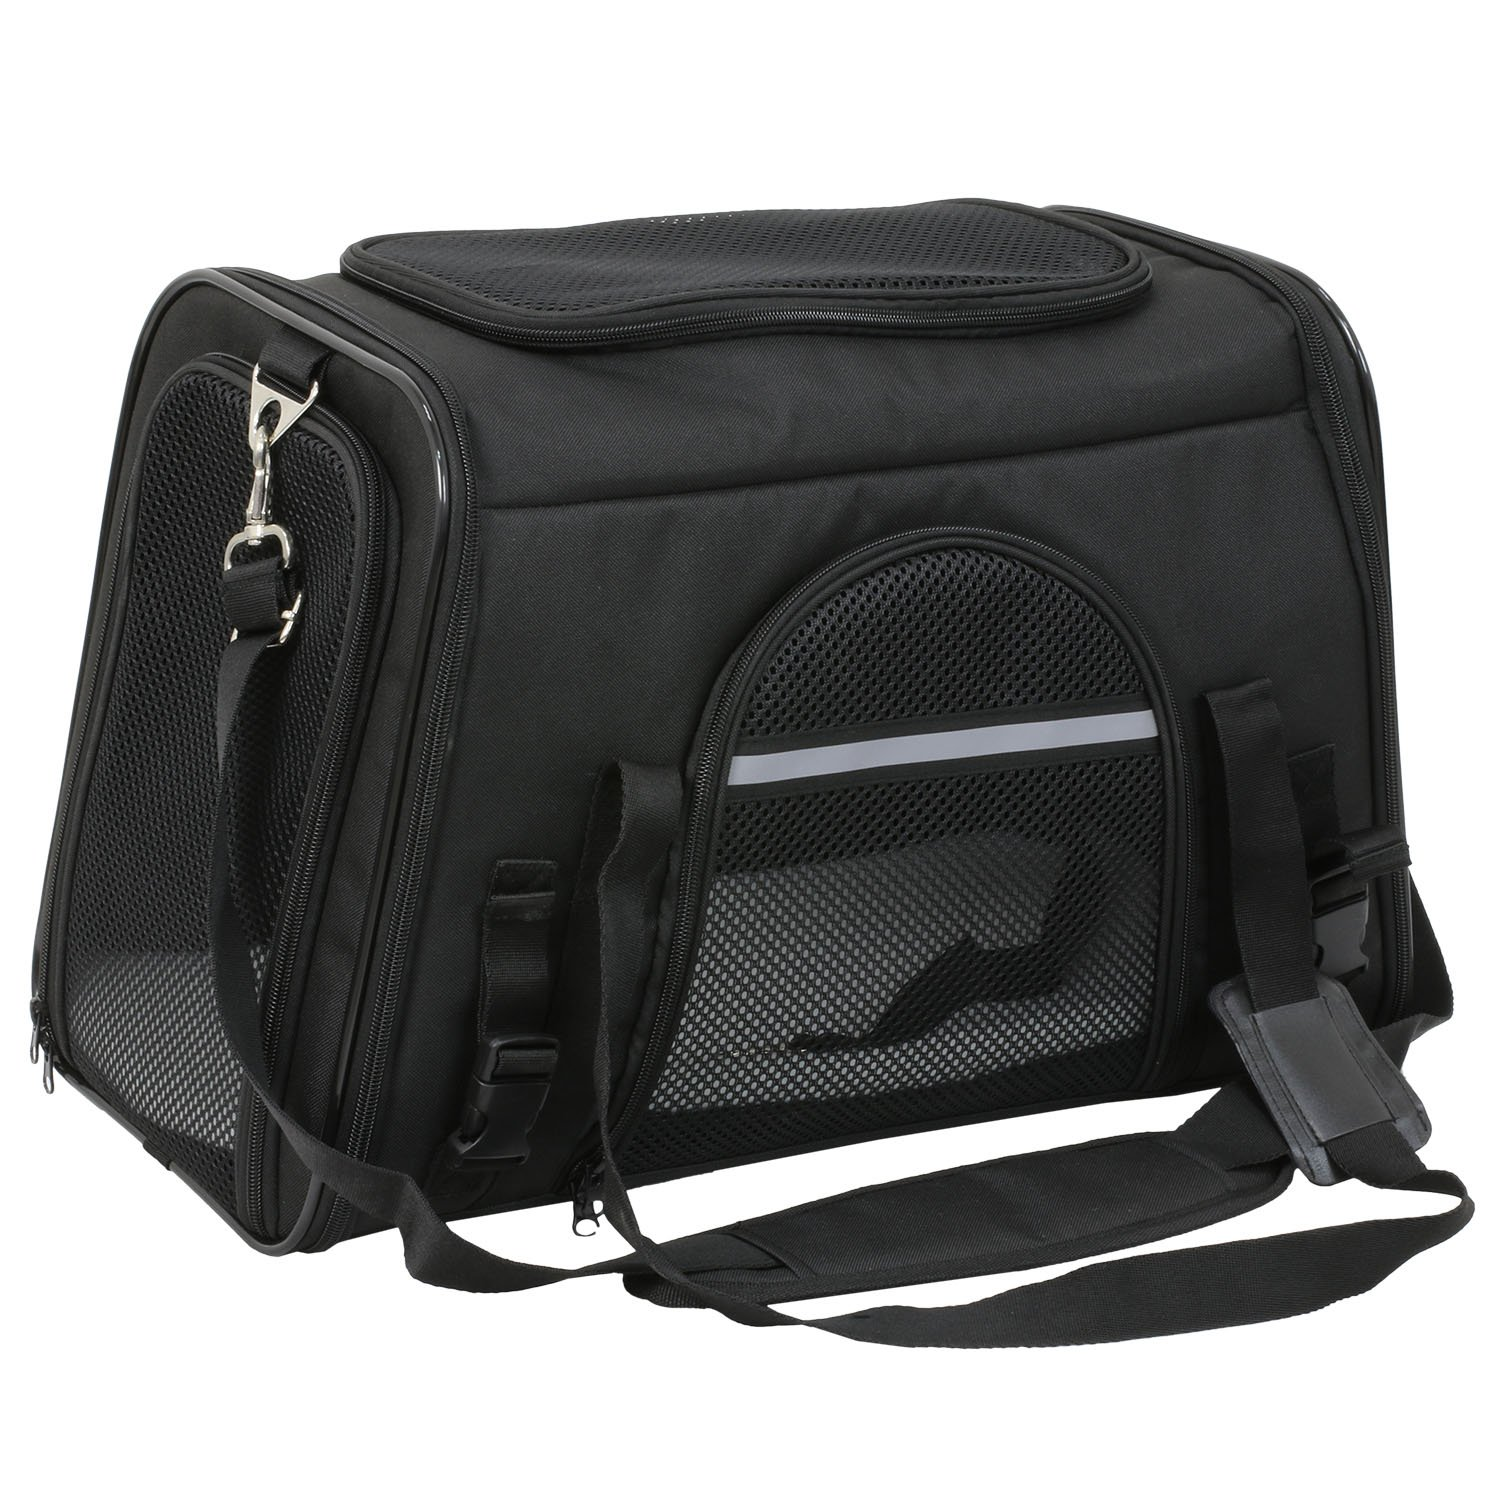 X-ZONE PET Airline Approved Pet Carriers,Comes with Fleece Pads Soft Sided Pet Carrier for Dog & Cat (Small, Carbon Black)